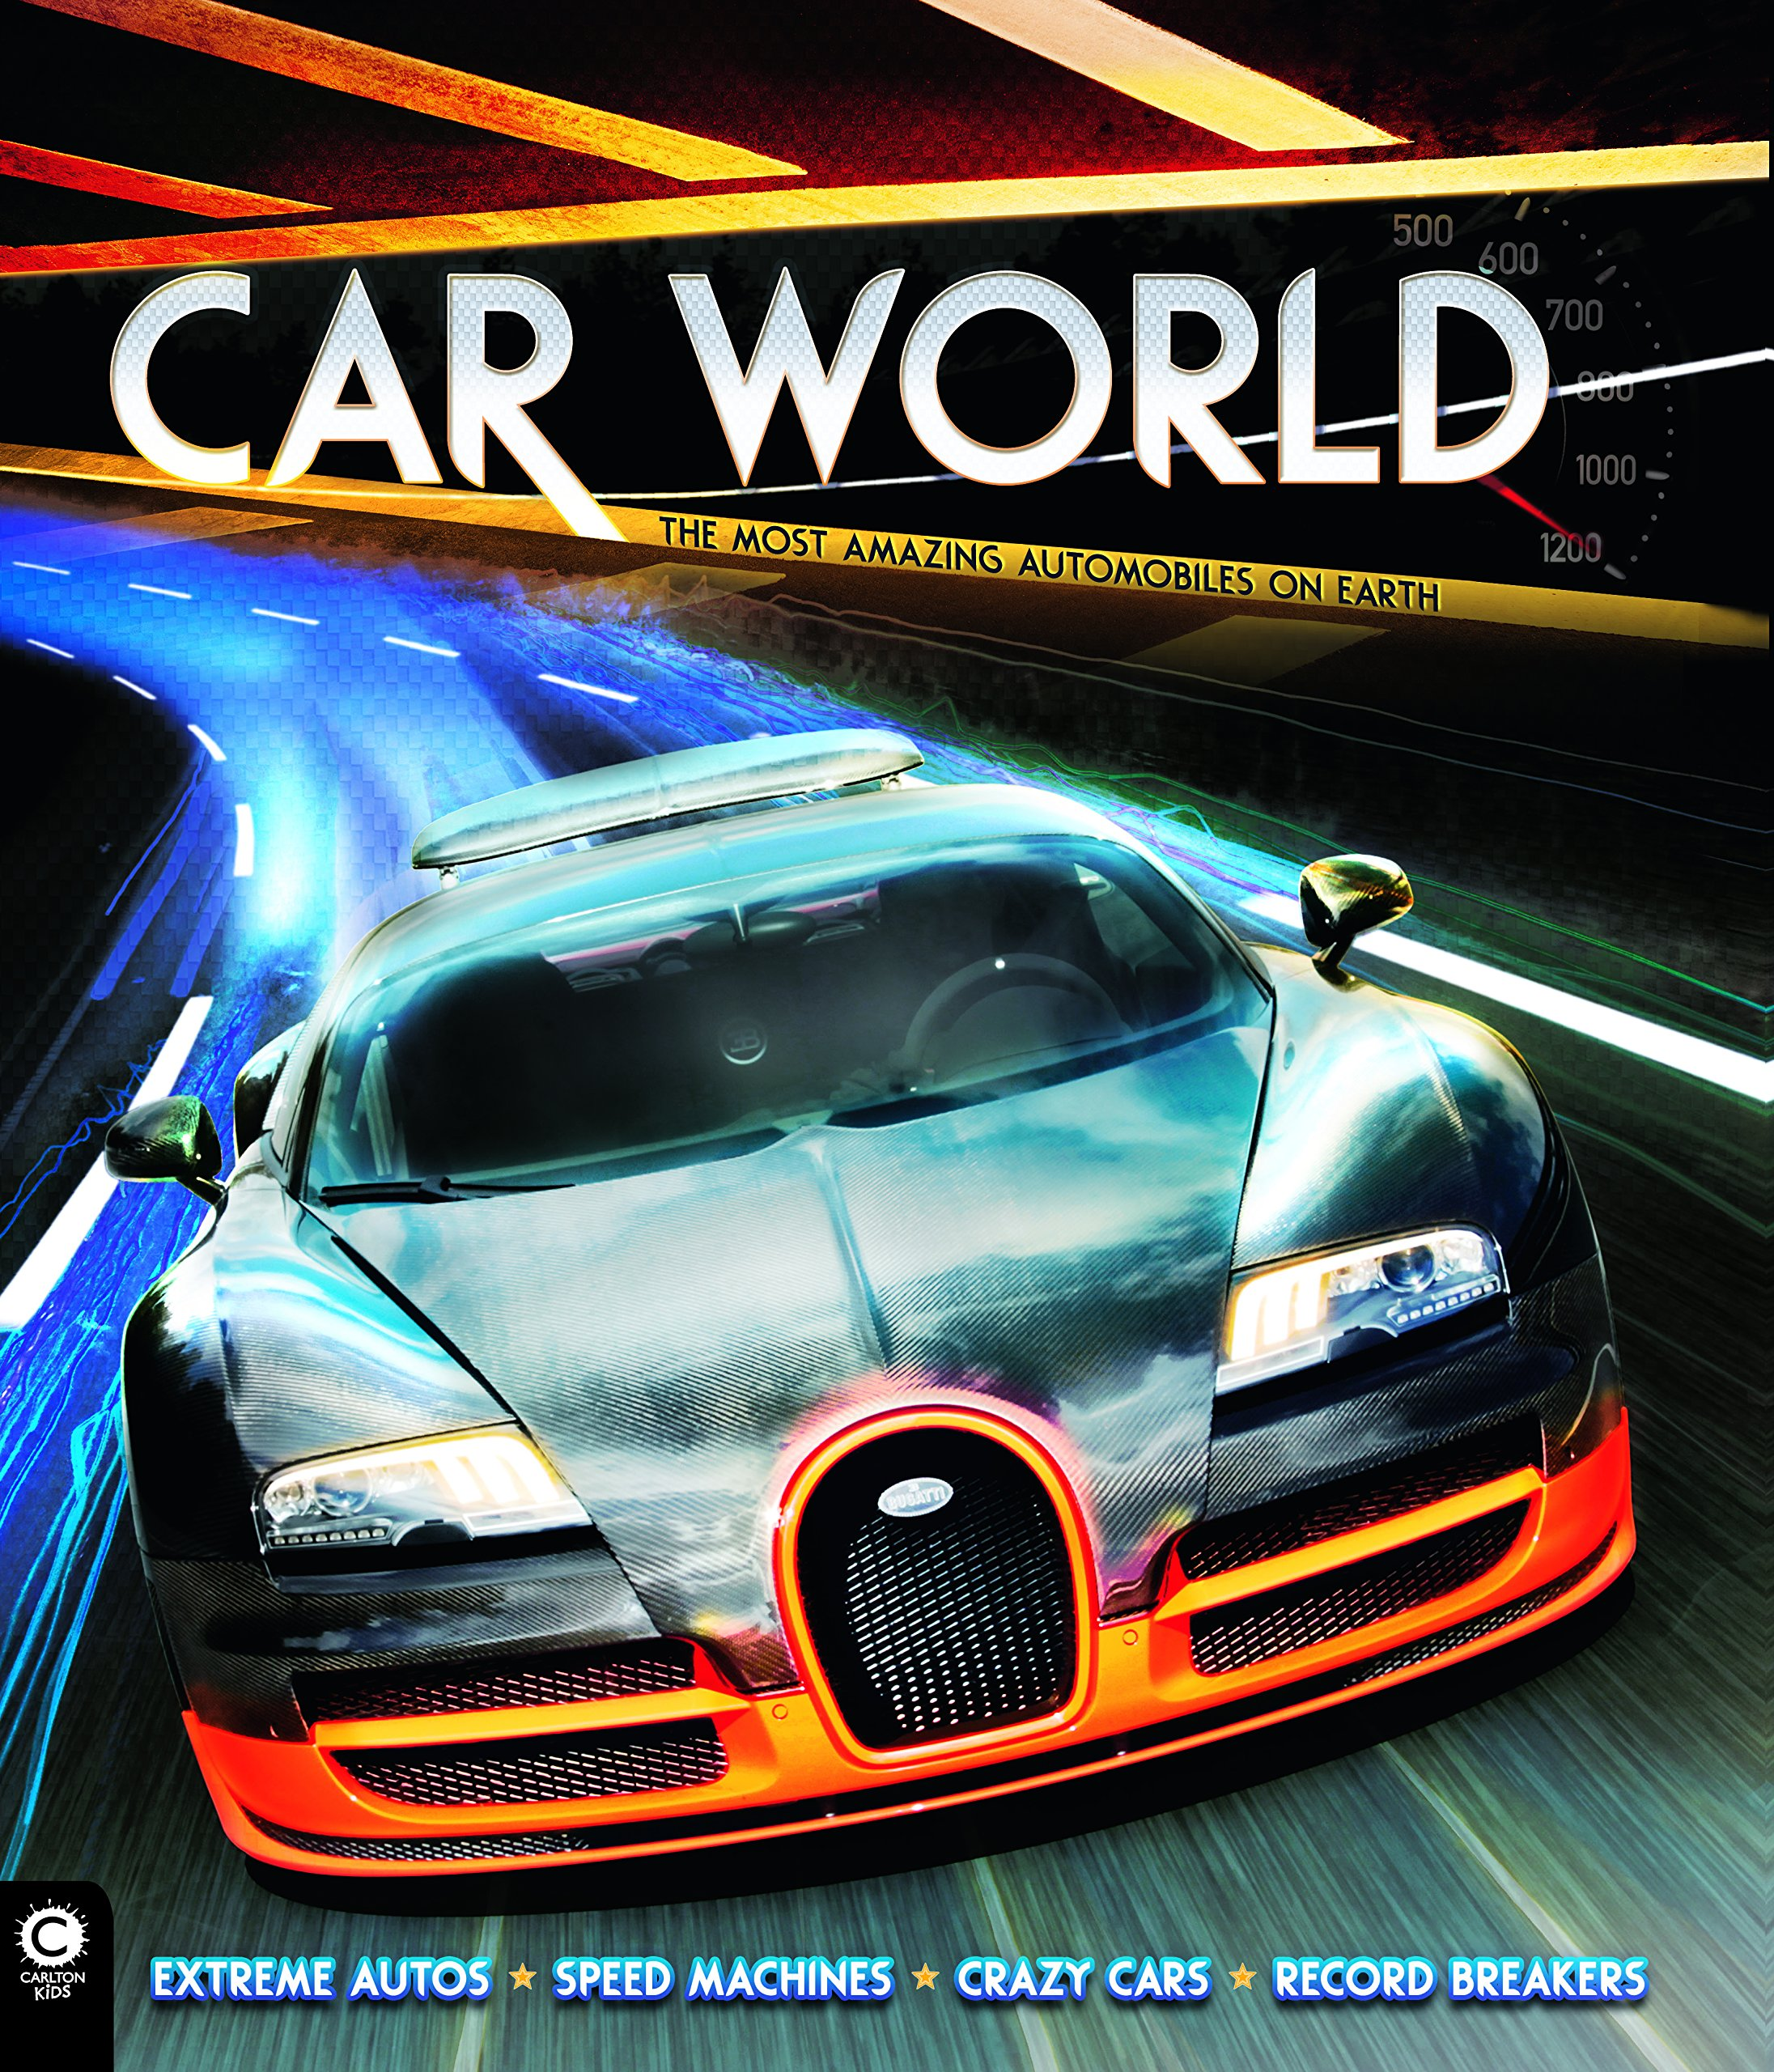 Car World The Most Amazing Automobiles On Earth Clive Gifford - Cool cars quentin willson